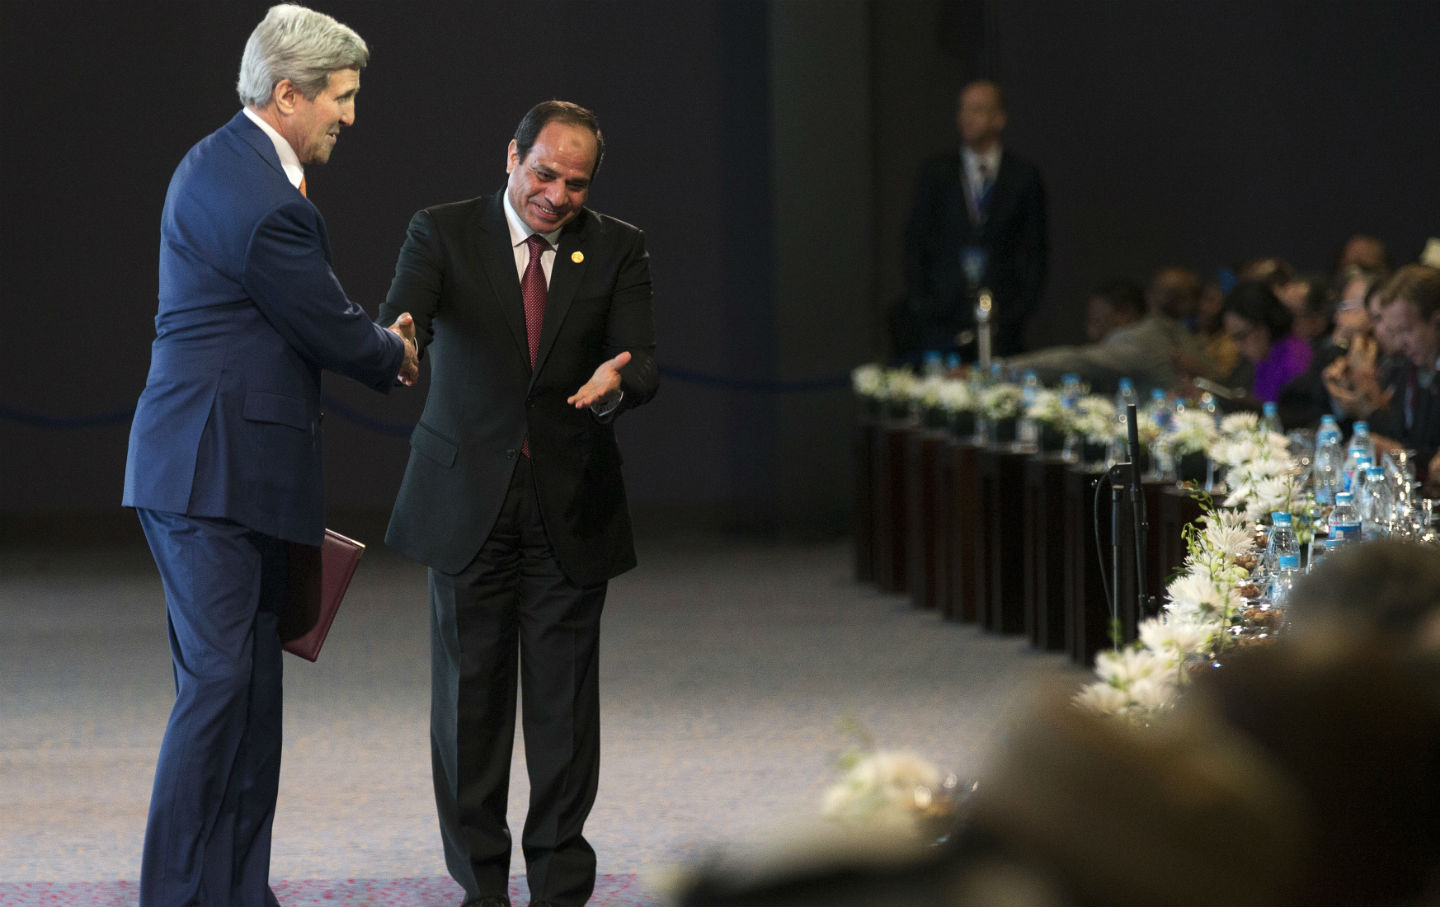 John-Kerry-and-Abdel-Fattah-el-Sisi